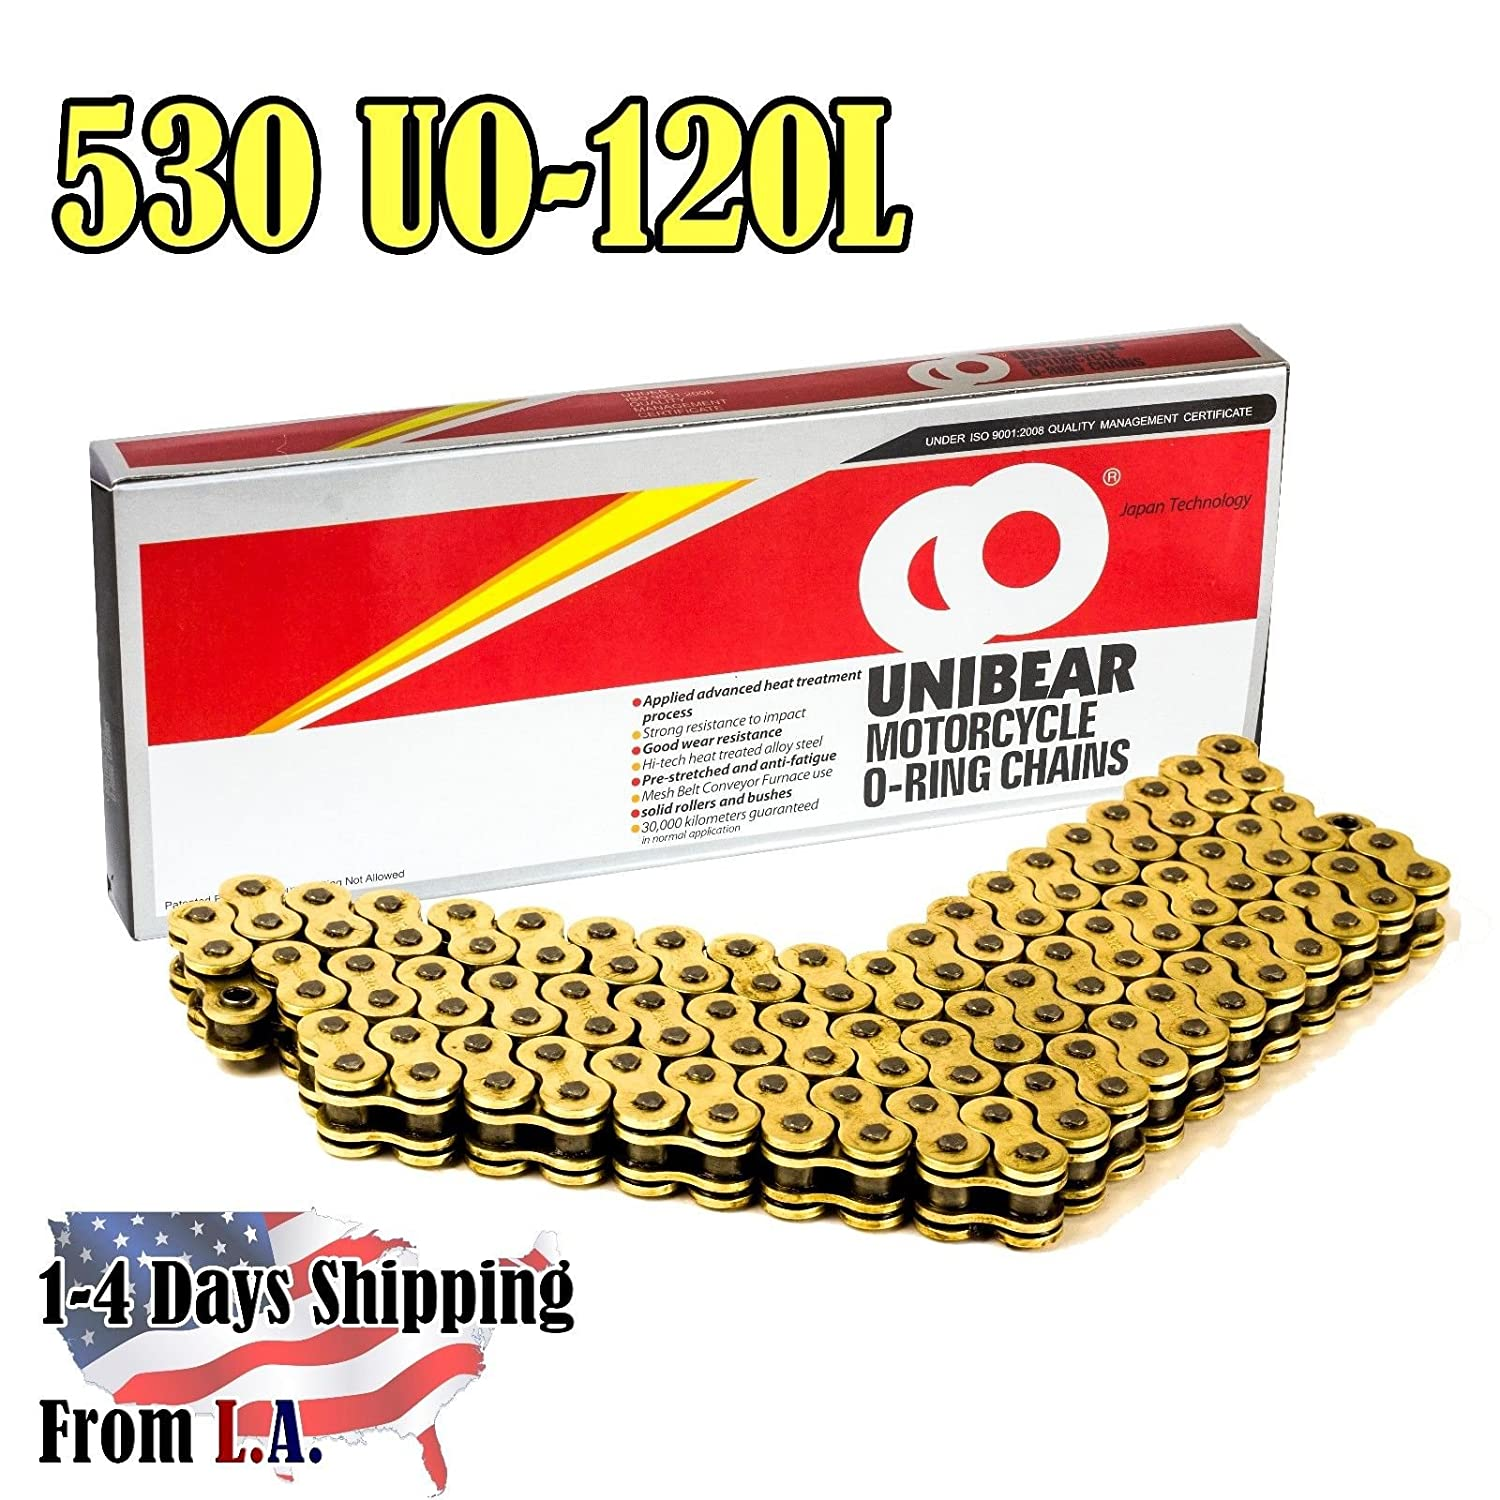 530 Gold Motorcycle O-Ring Chain 120 Links with 1 Connecting Link Unibear 530UO-130L